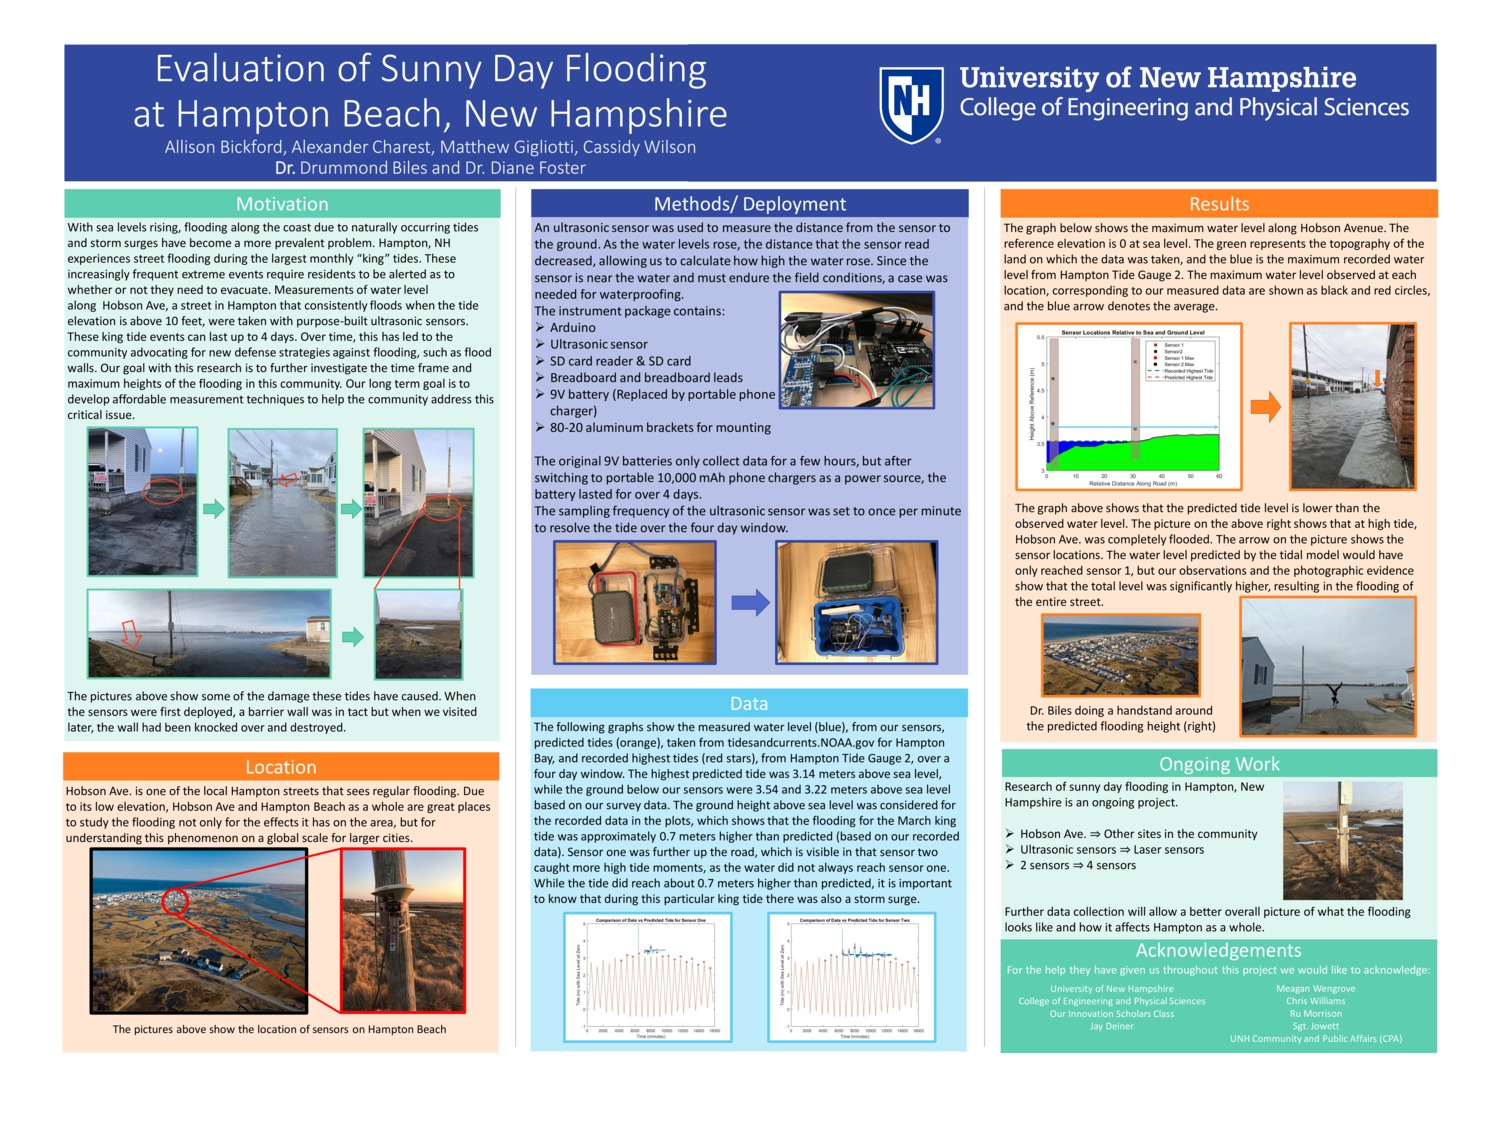 Evaluation Of Sunny Day Flooding At Hampton Beach by arc1086